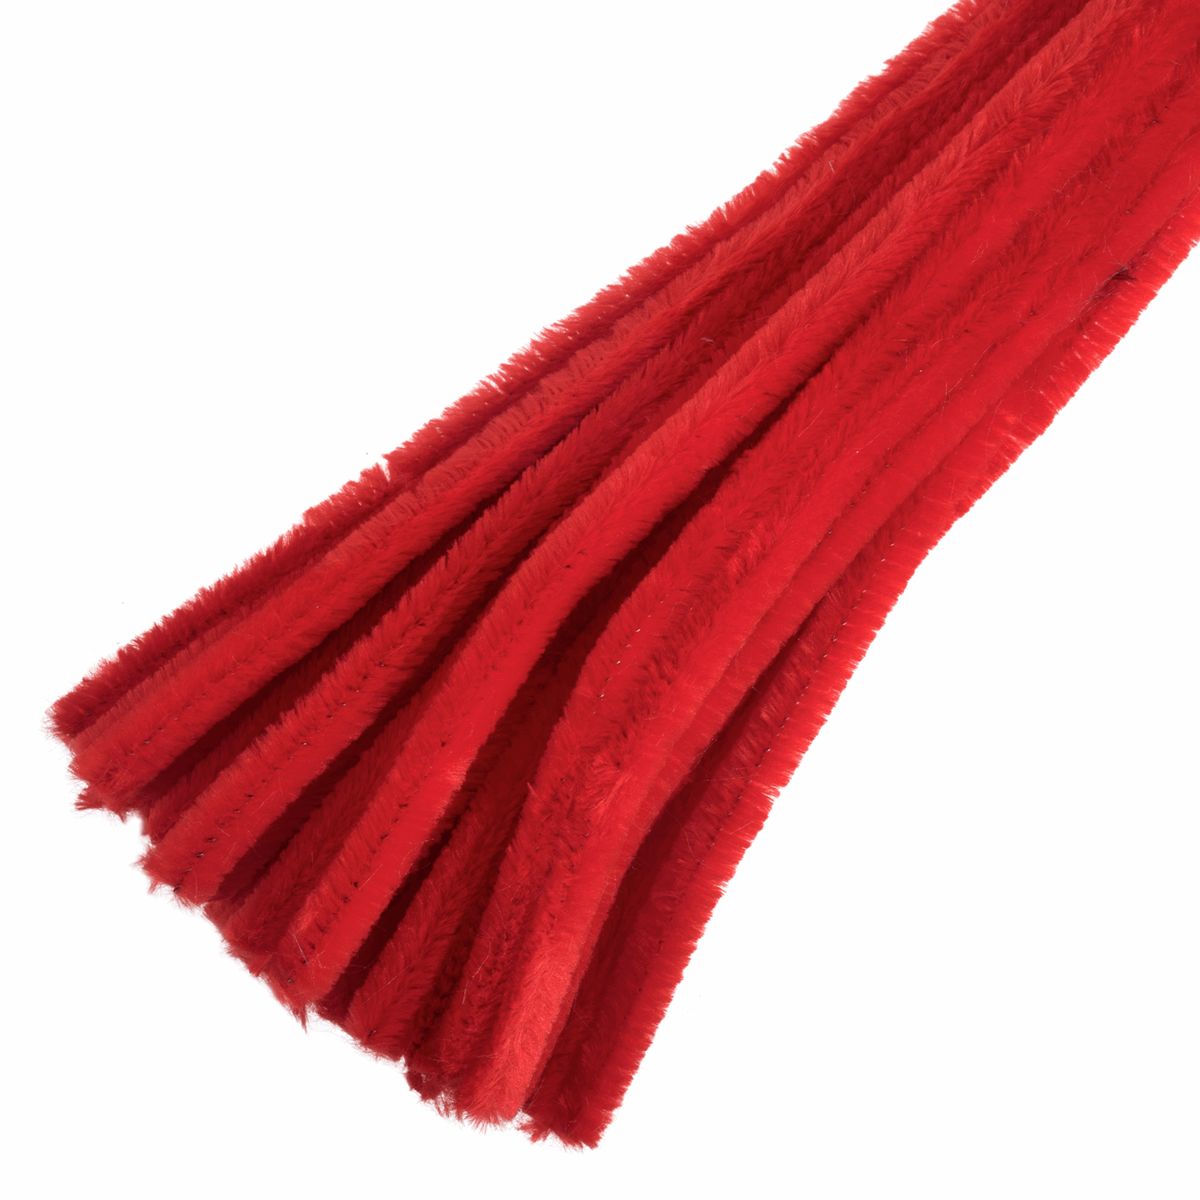 Picture of Chenilles: 30cm x 12mm: Red: 15 Pieces